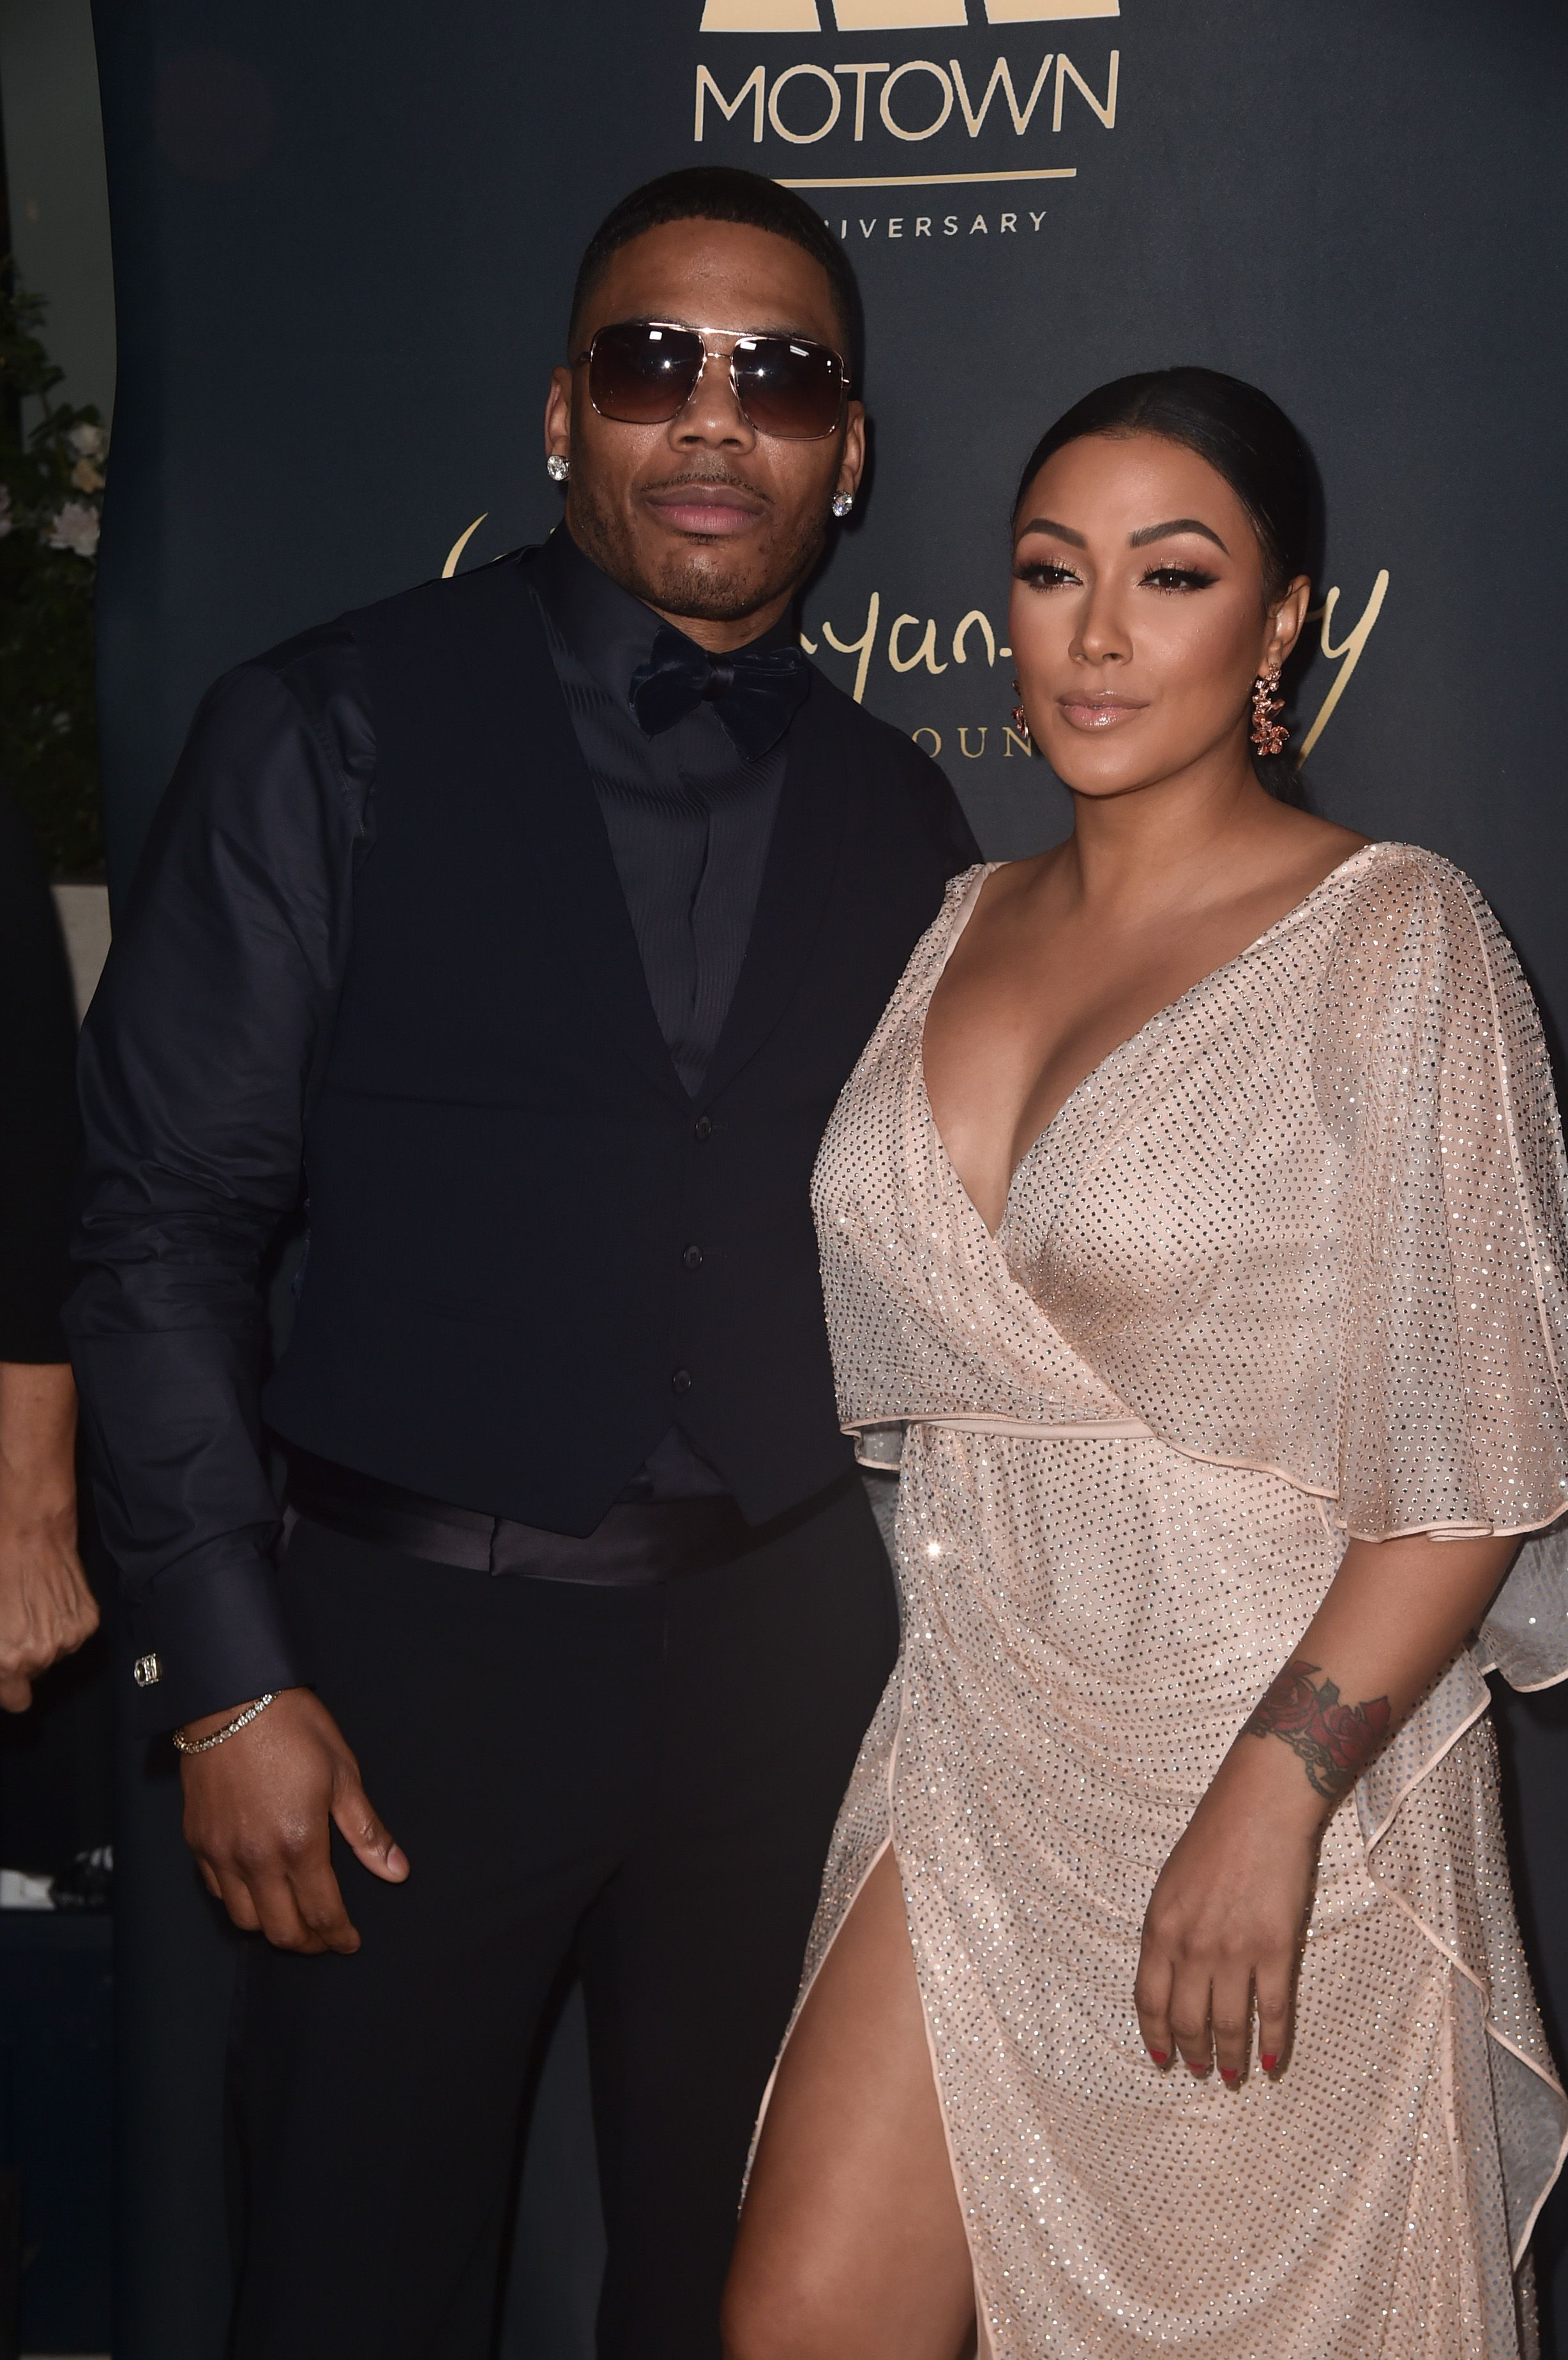 Nelly and Shantel Jackson at the Ryan Gordy Foundation's celebration of 60 Years of Motown at Waldorf Astoria Beverly Hills on November 11, 2019. | Photo: Getty Images